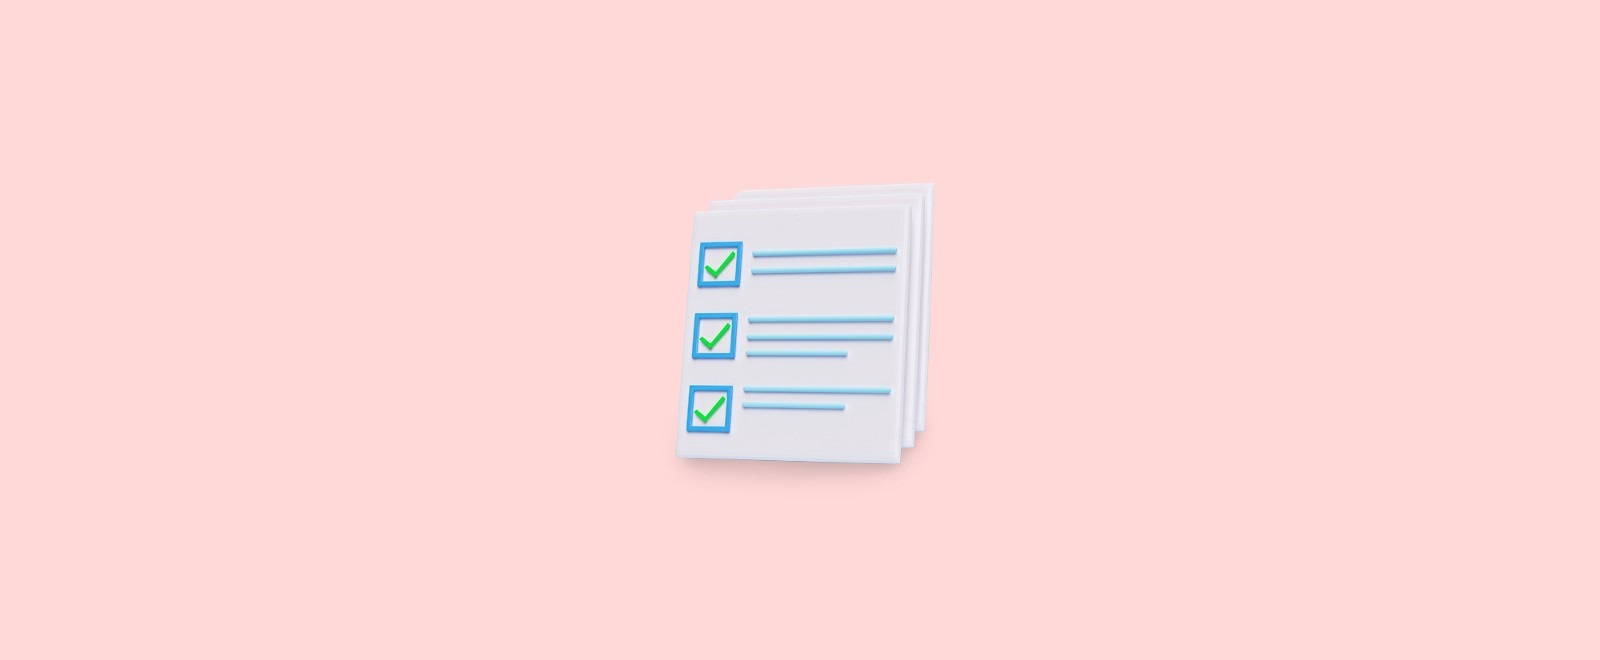 A stack of papers with checklists on them on a pink background